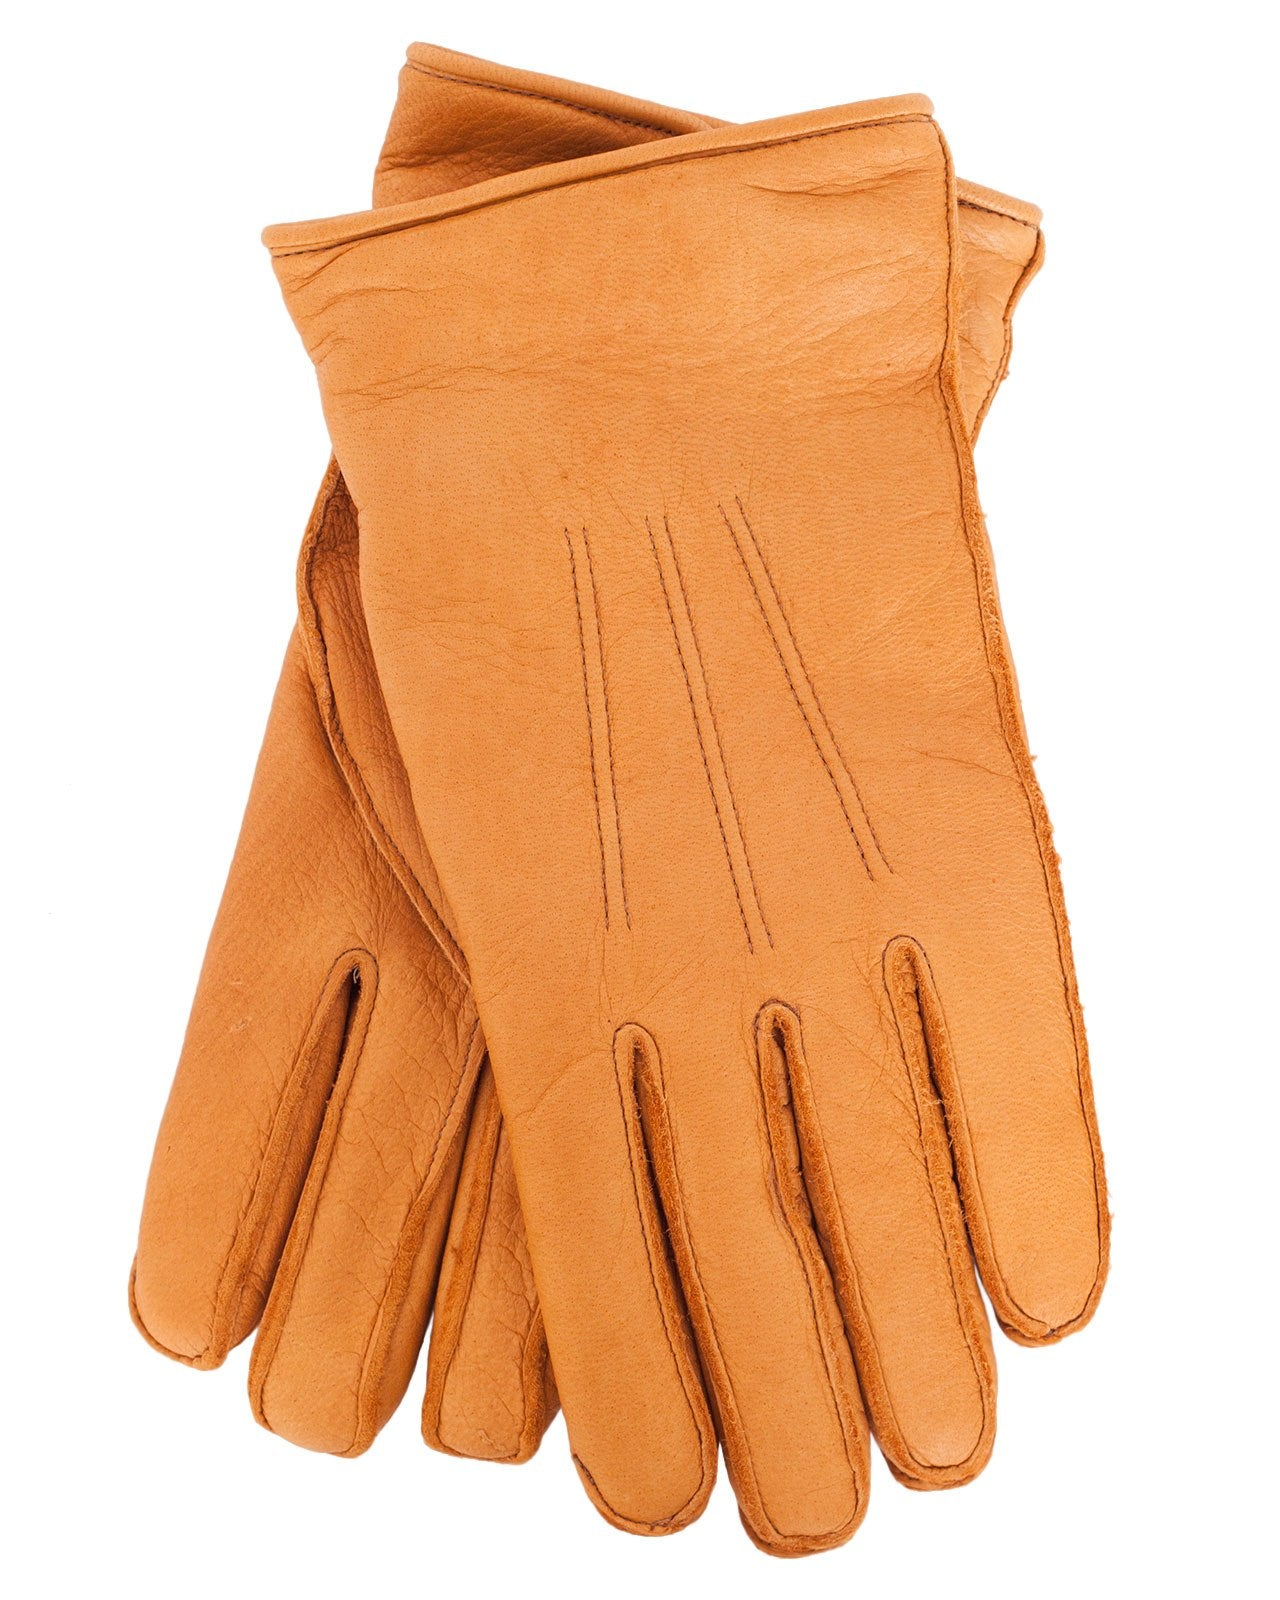 Glad Hand Leather Gloves, Camel